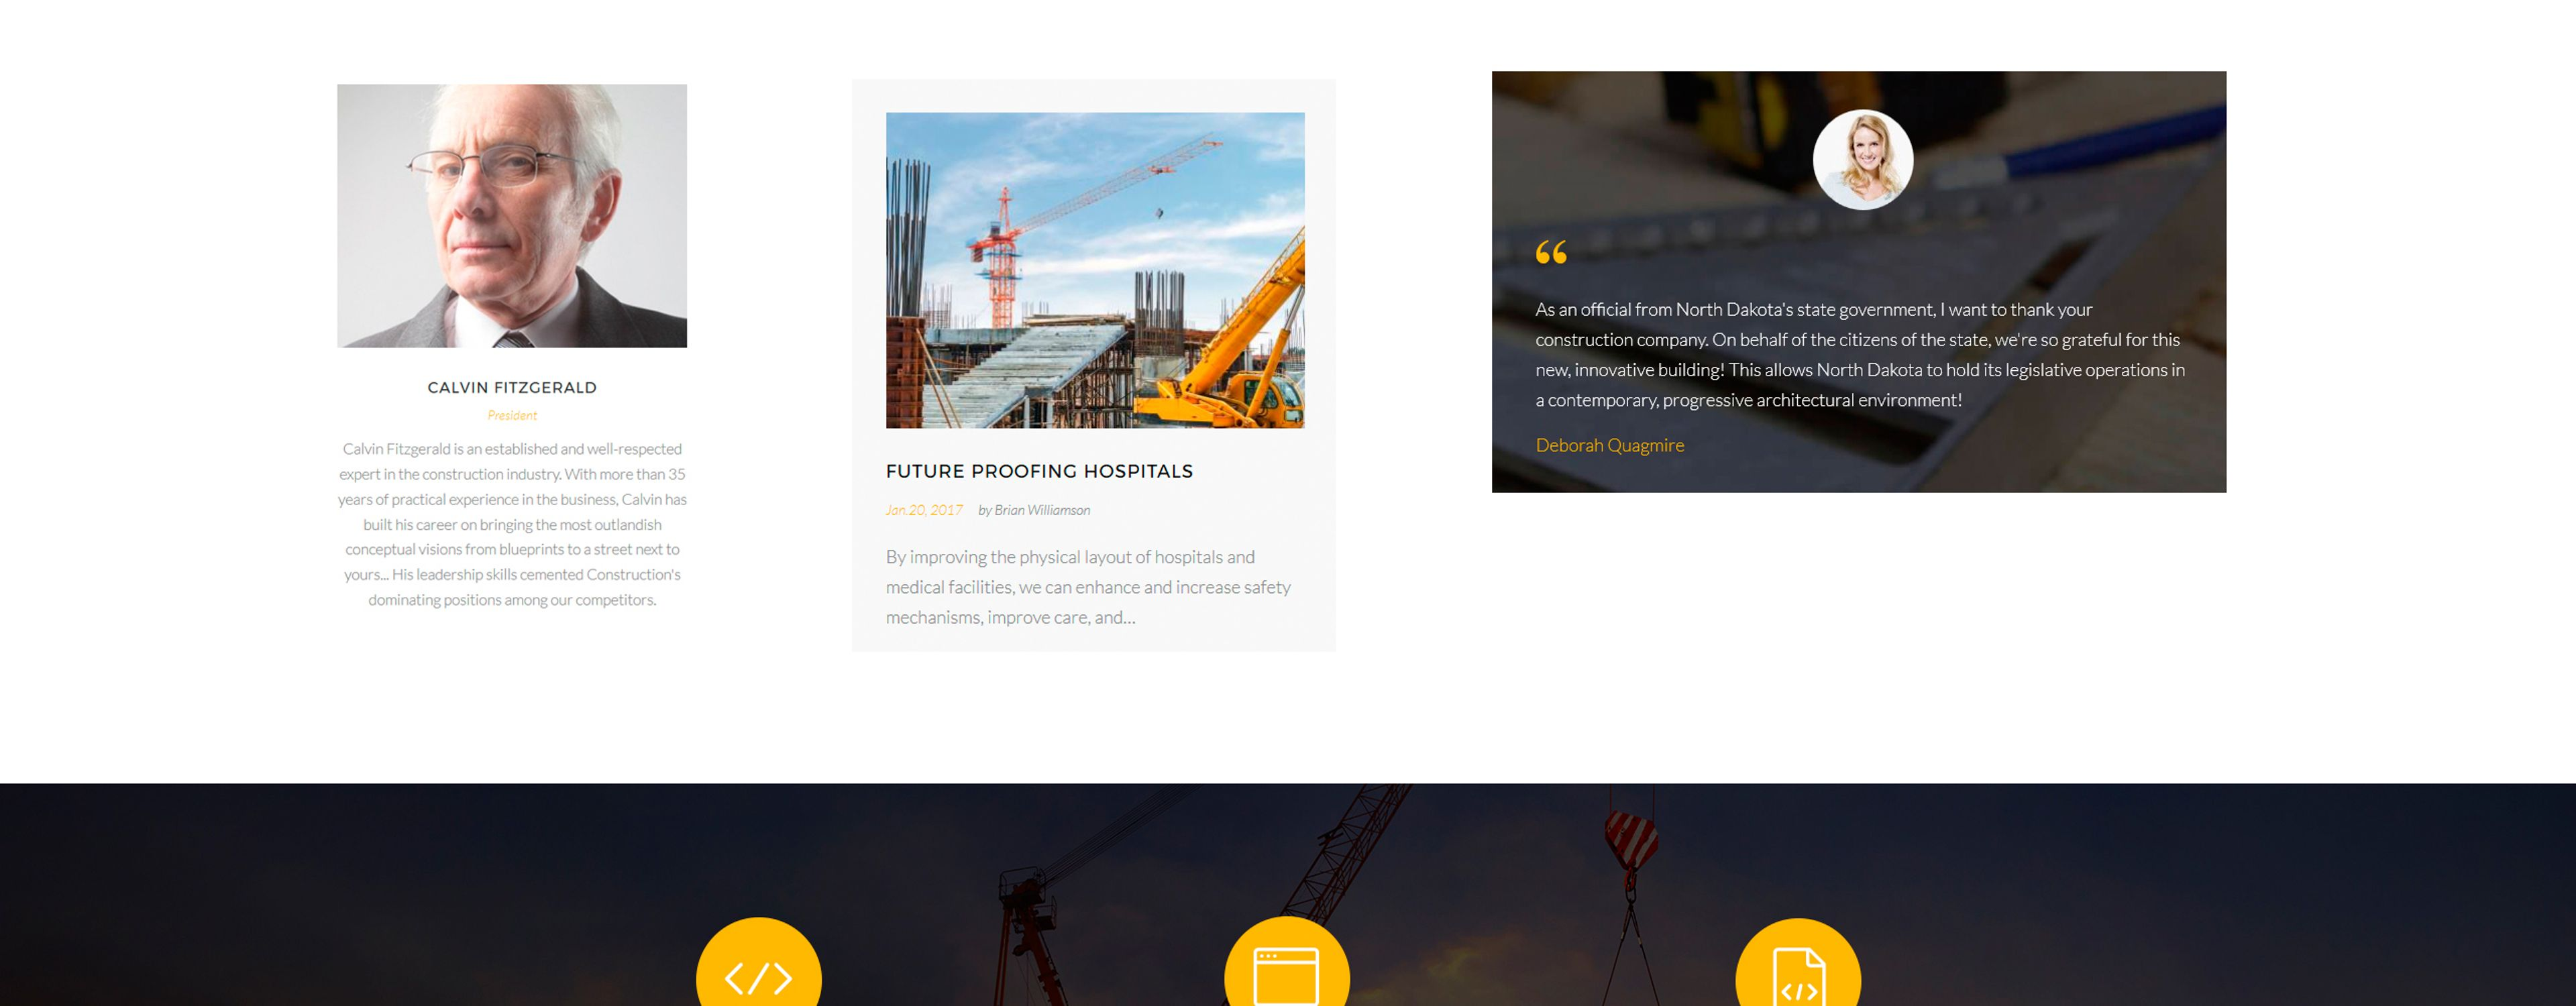 Constructo - Construction Company Landing Page Template